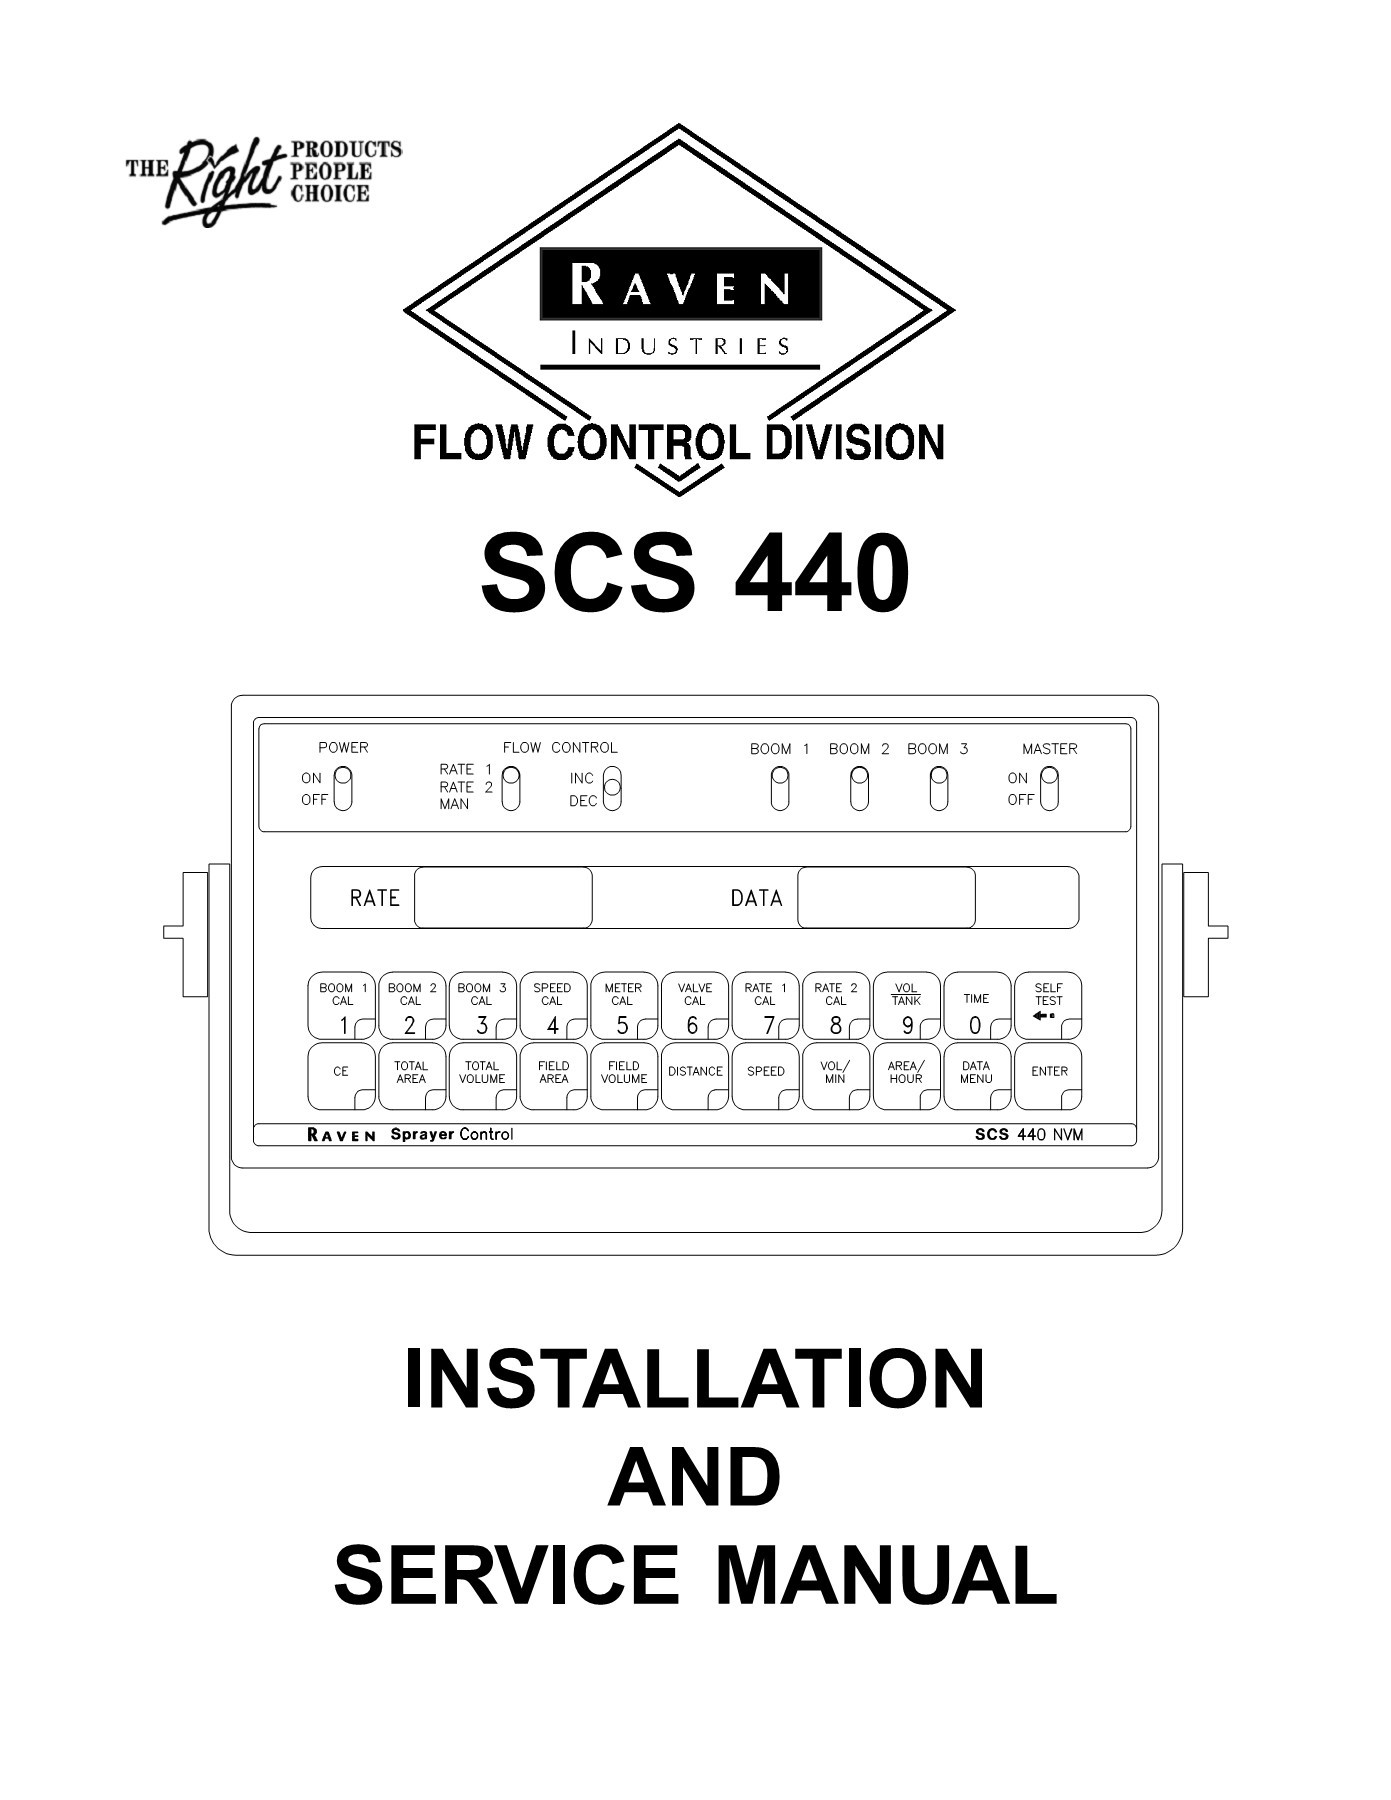 Raven 440 Wiring Diagram Detailed Wiring Diagrams Raven MPV 7100 Wiring-Diagram  Raven Wiring Diagram